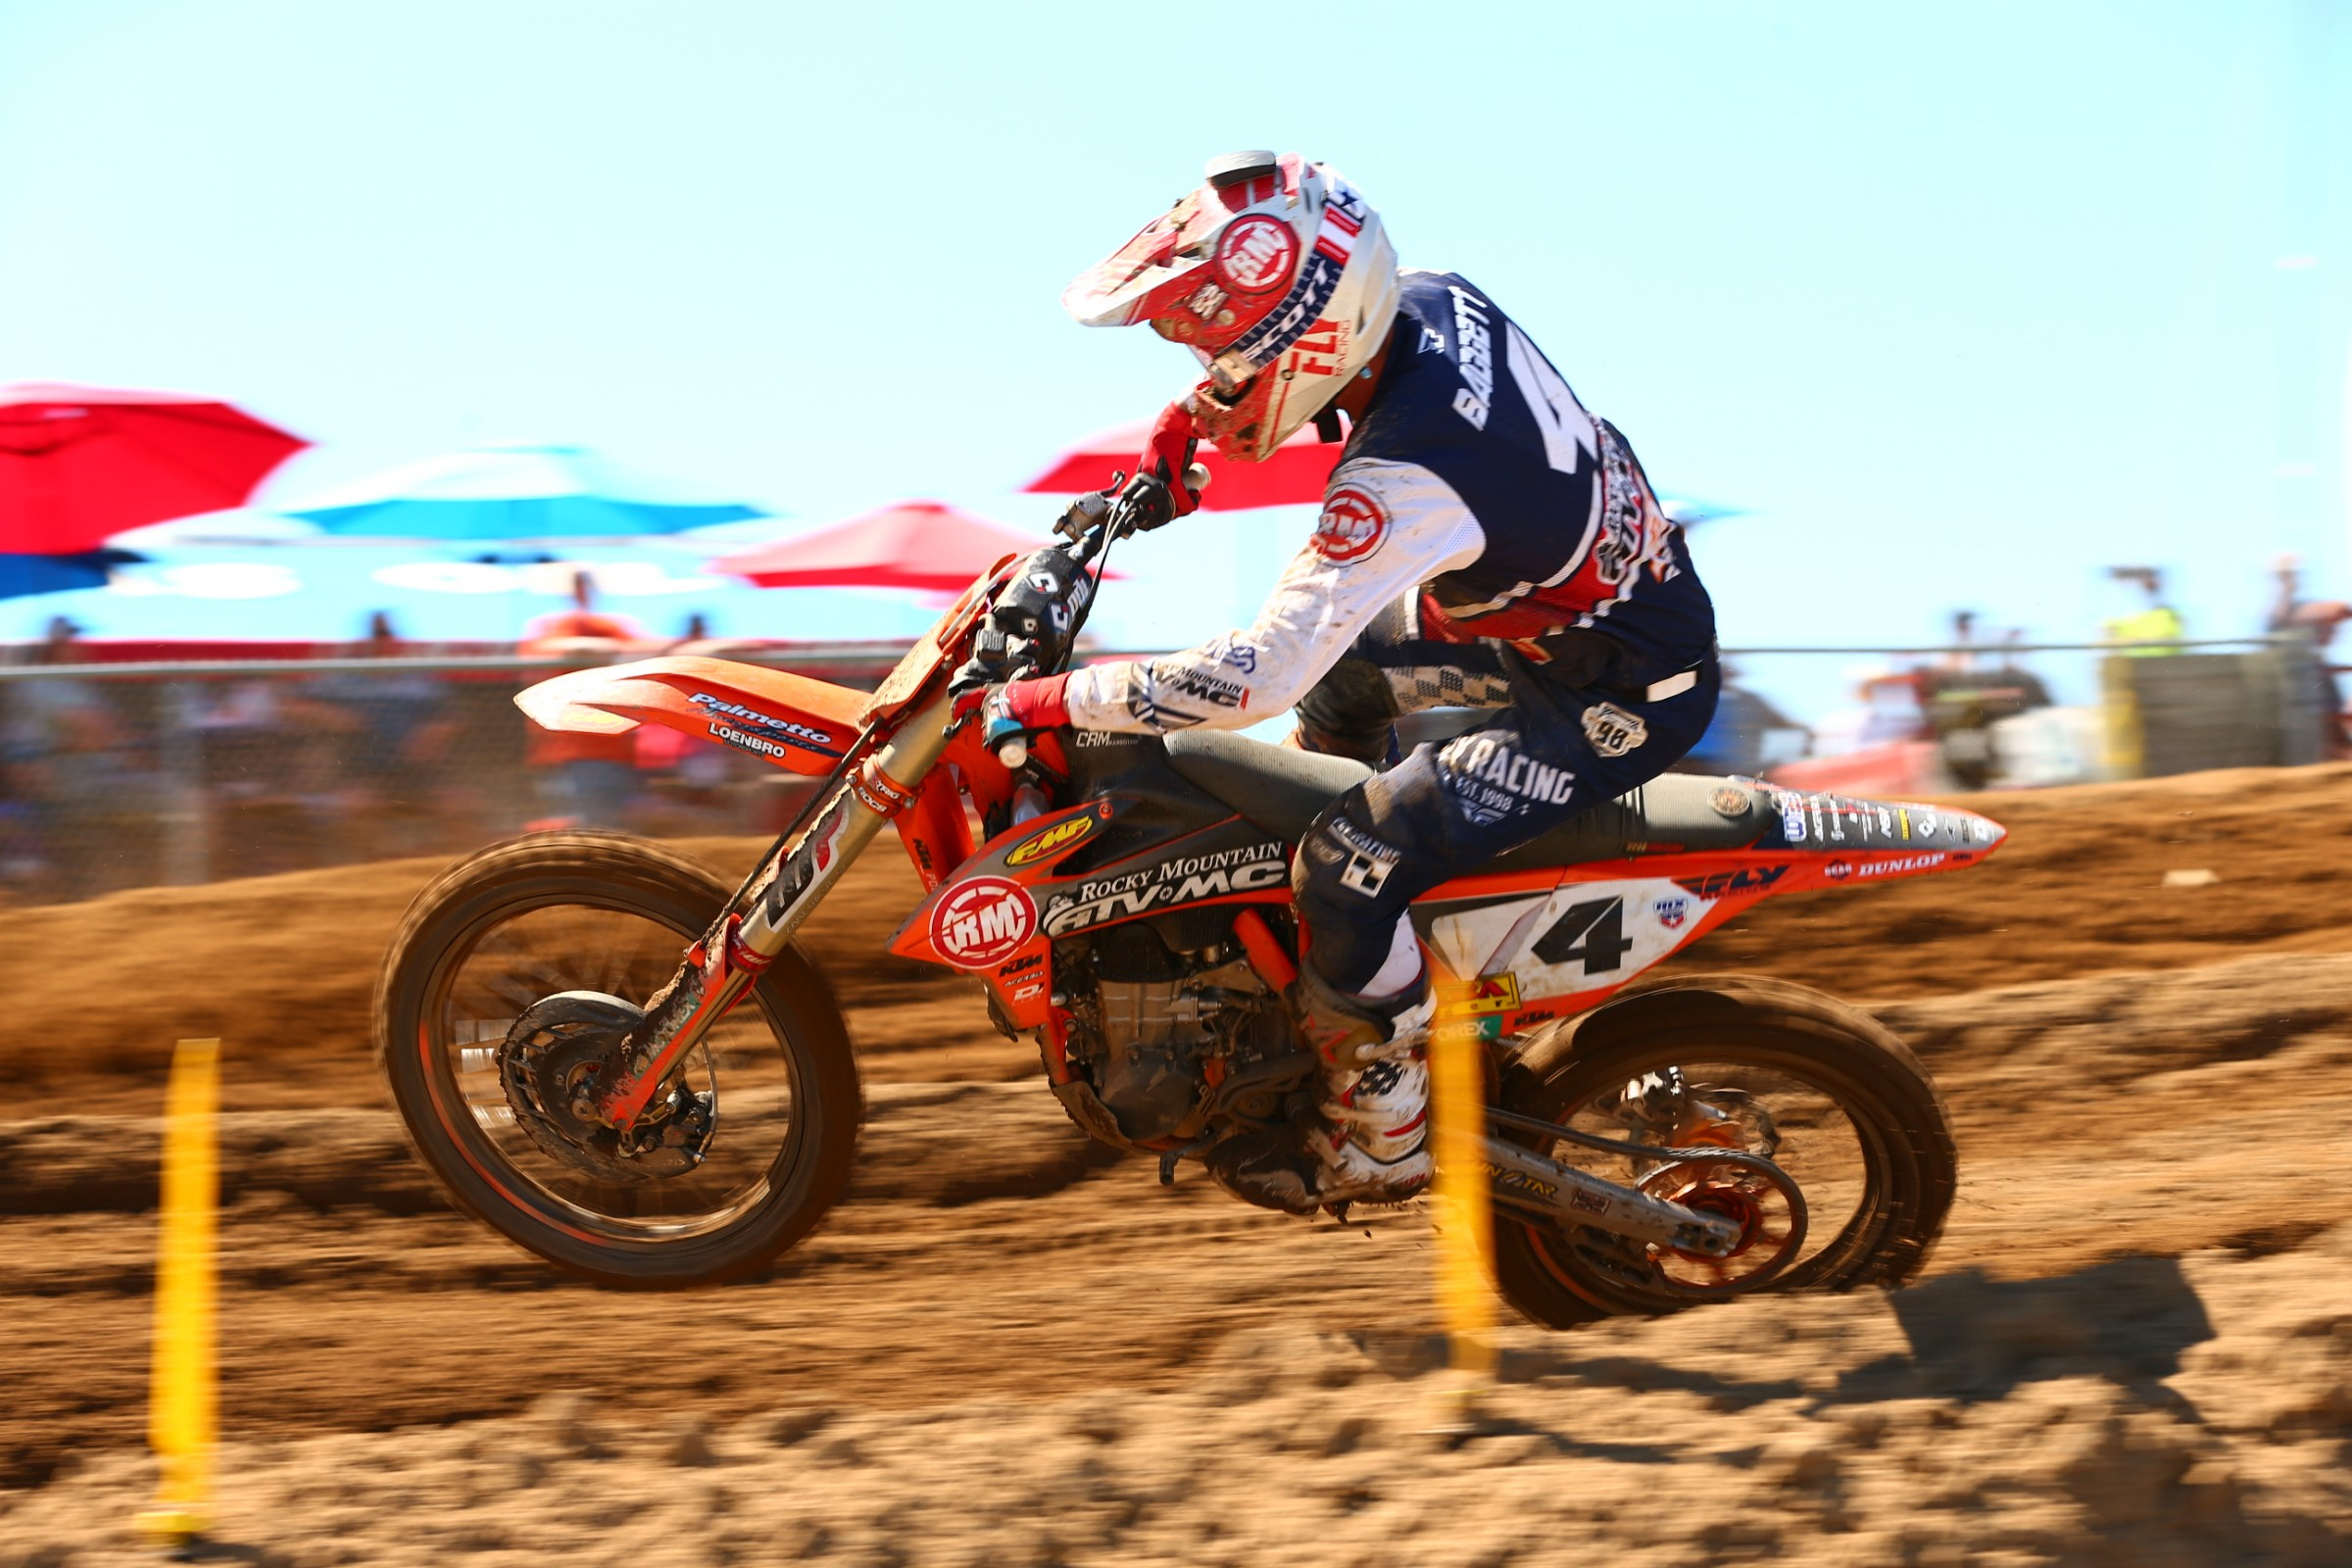 Blake Baggett finished fourth overall on the day.